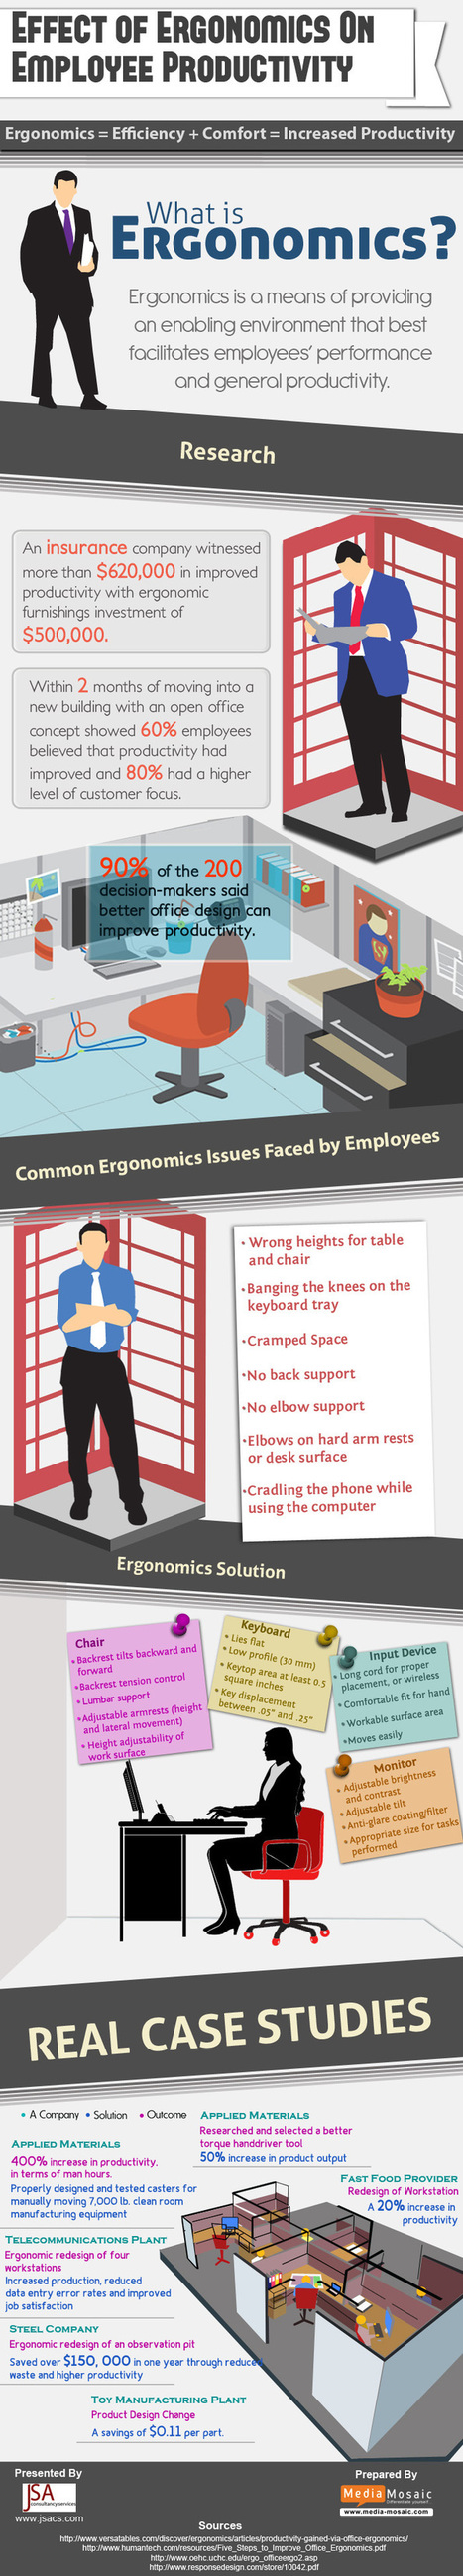 Effect of Ergonomics on Employee Productivity Infographic | Office Environments of the Future | Scoop.it